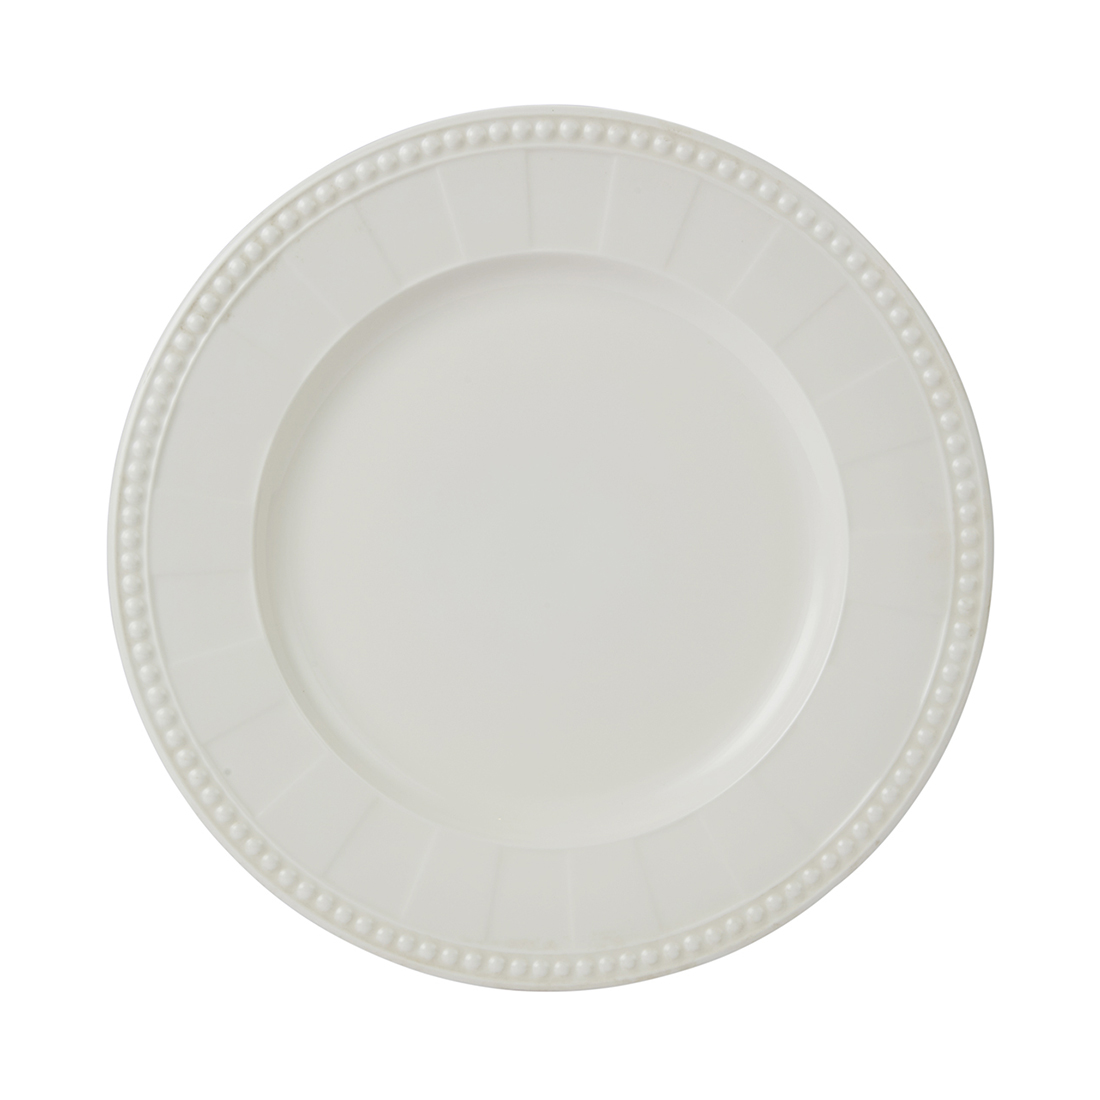 Florence Dessert Plate 21.5 Cm Ceramic Plates in White With Gold Line Colour by Living Essence